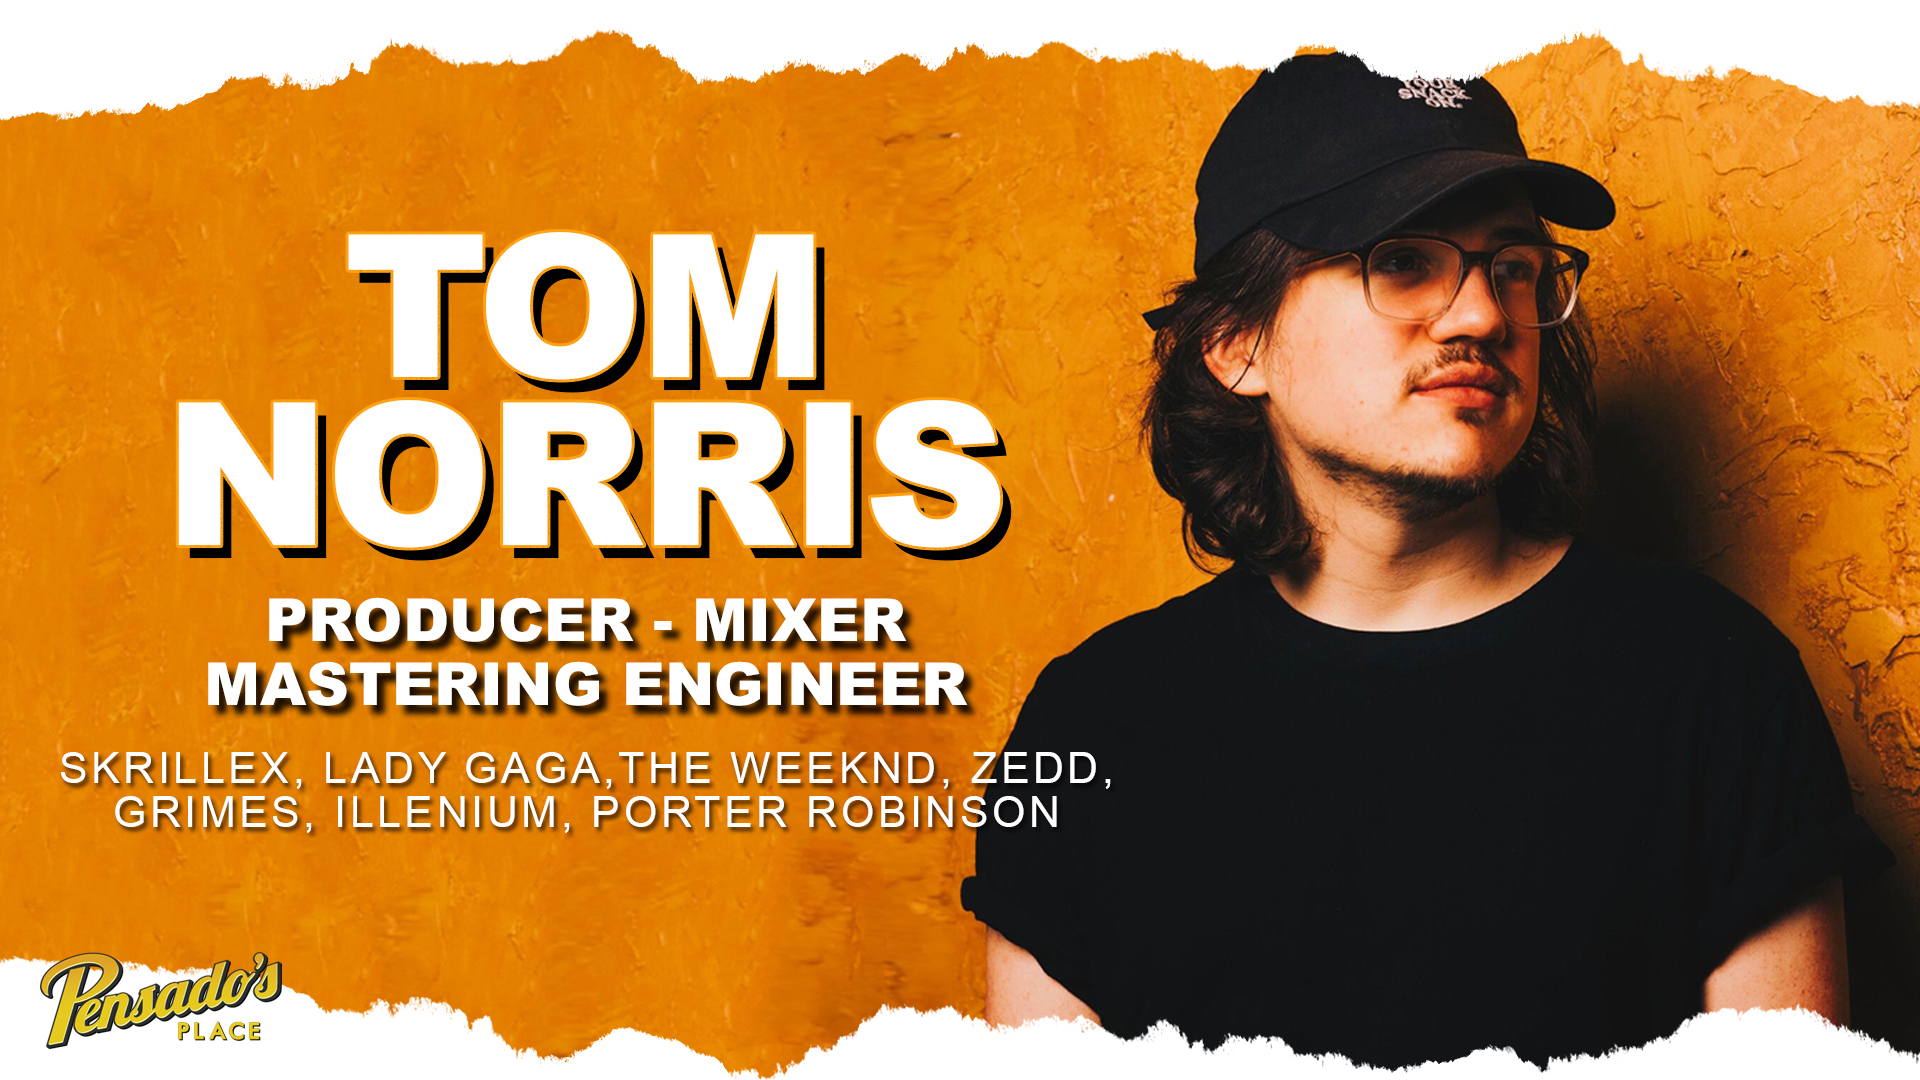 Skrillex Mix Engineer / Producer / Mastering Engineer, Tom Norris